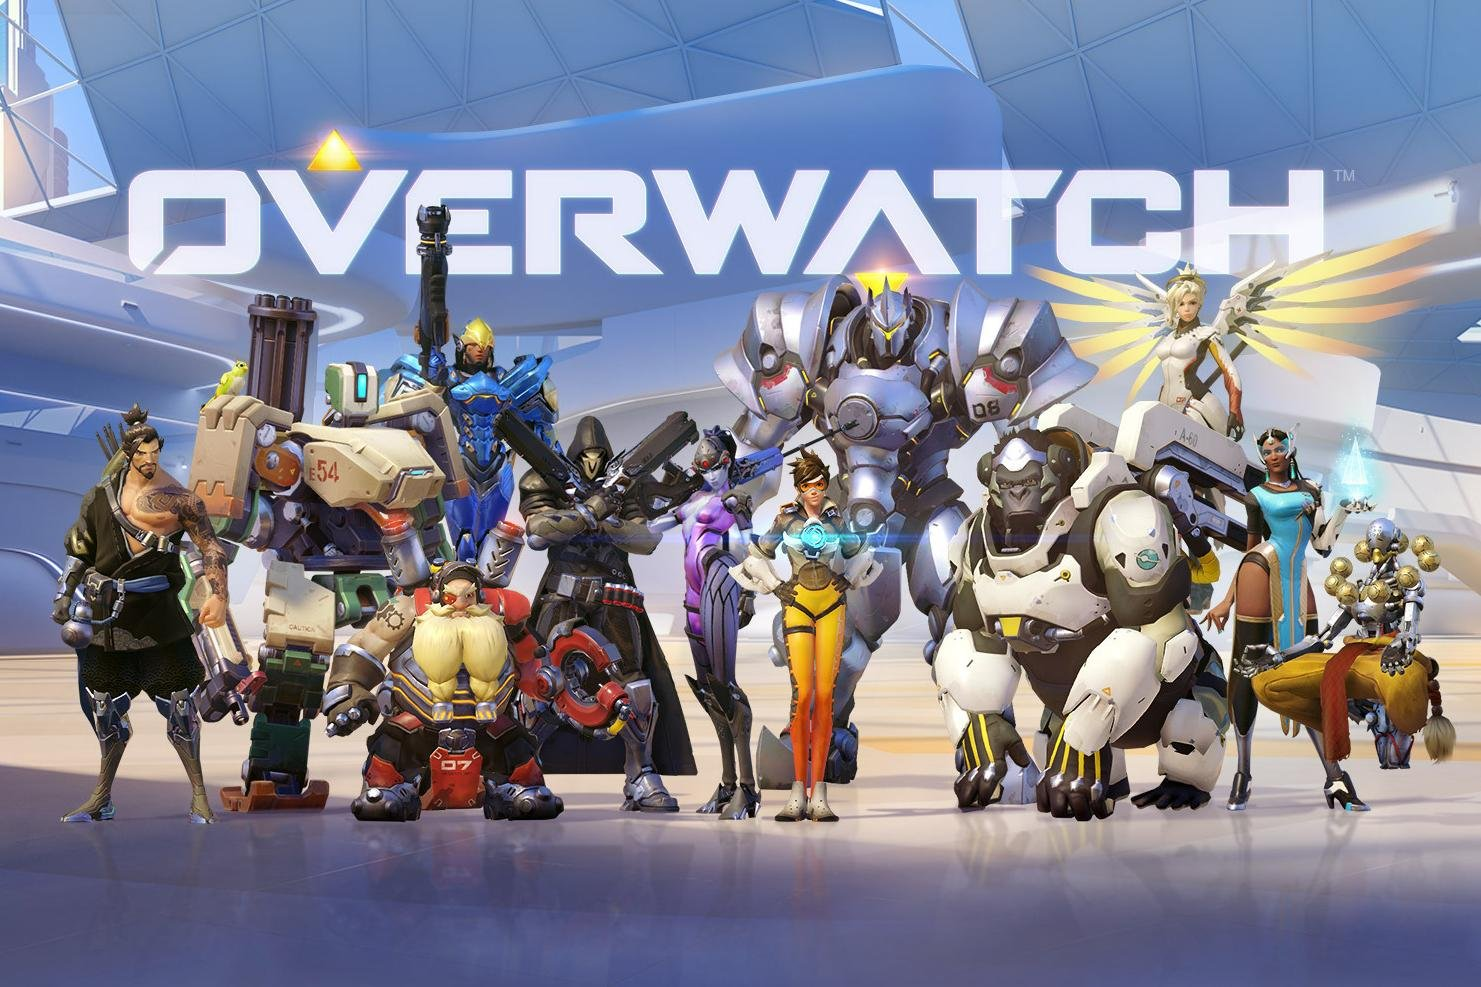 overwatch switch leak, Overwatch accessory leaked for Switch, fuels rumors of a port, Gadget Pilipinas